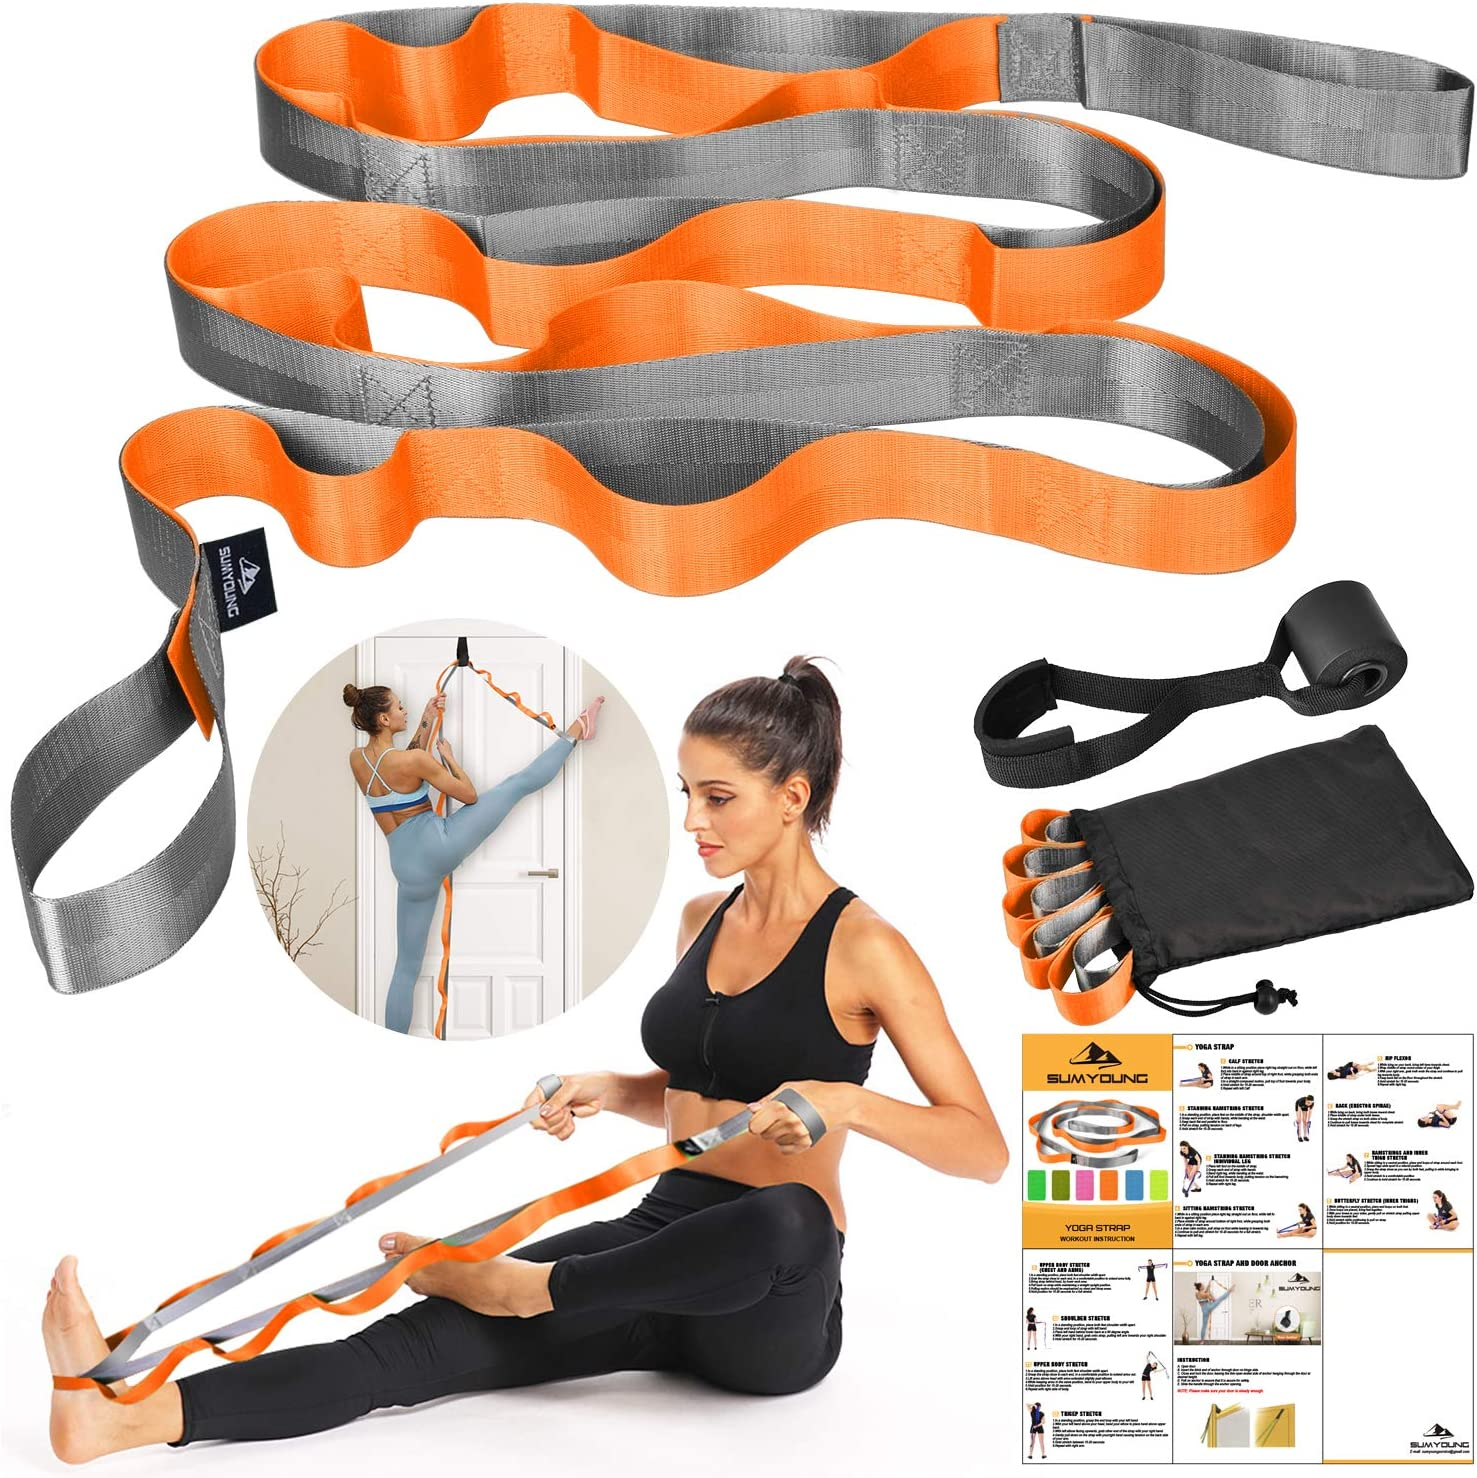 Max 53% OFF SUMYOUNG Yoga Strap Stretch with Max 55% OFF Loops Nonelastic 12 Str